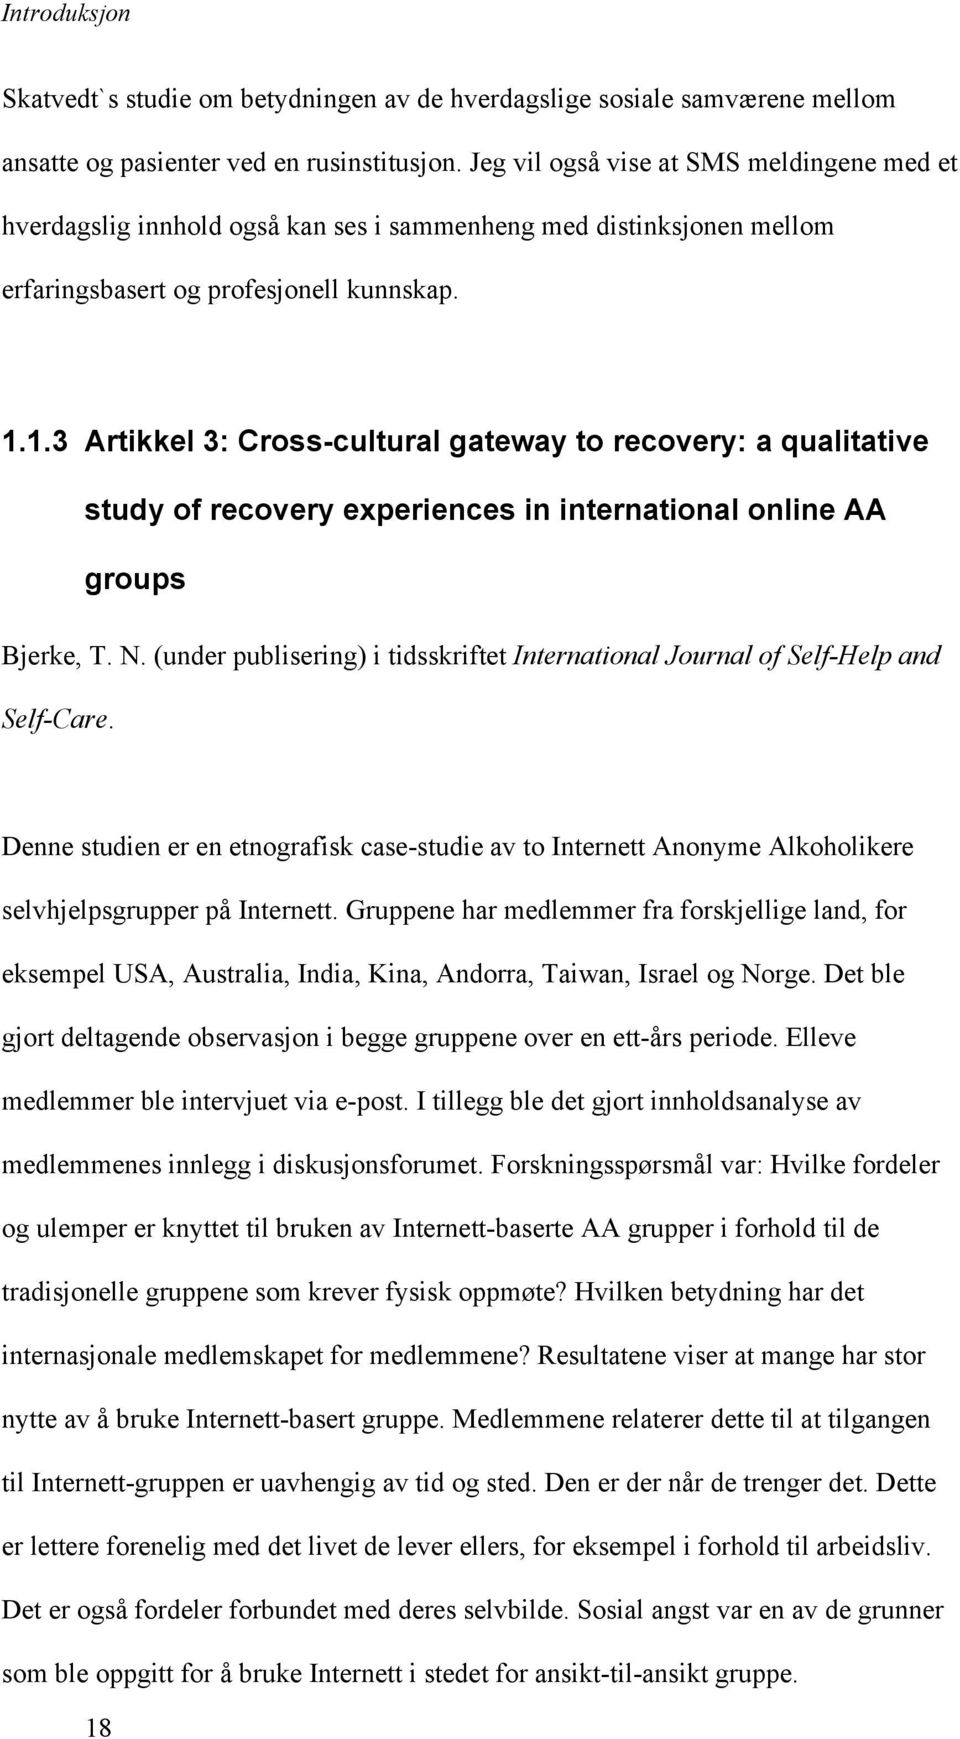 1.3 Artikkel 3: Cross-cultural gateway to recovery: a qualitative study of recovery experiences in international online AA groups Bjerke, T. N.